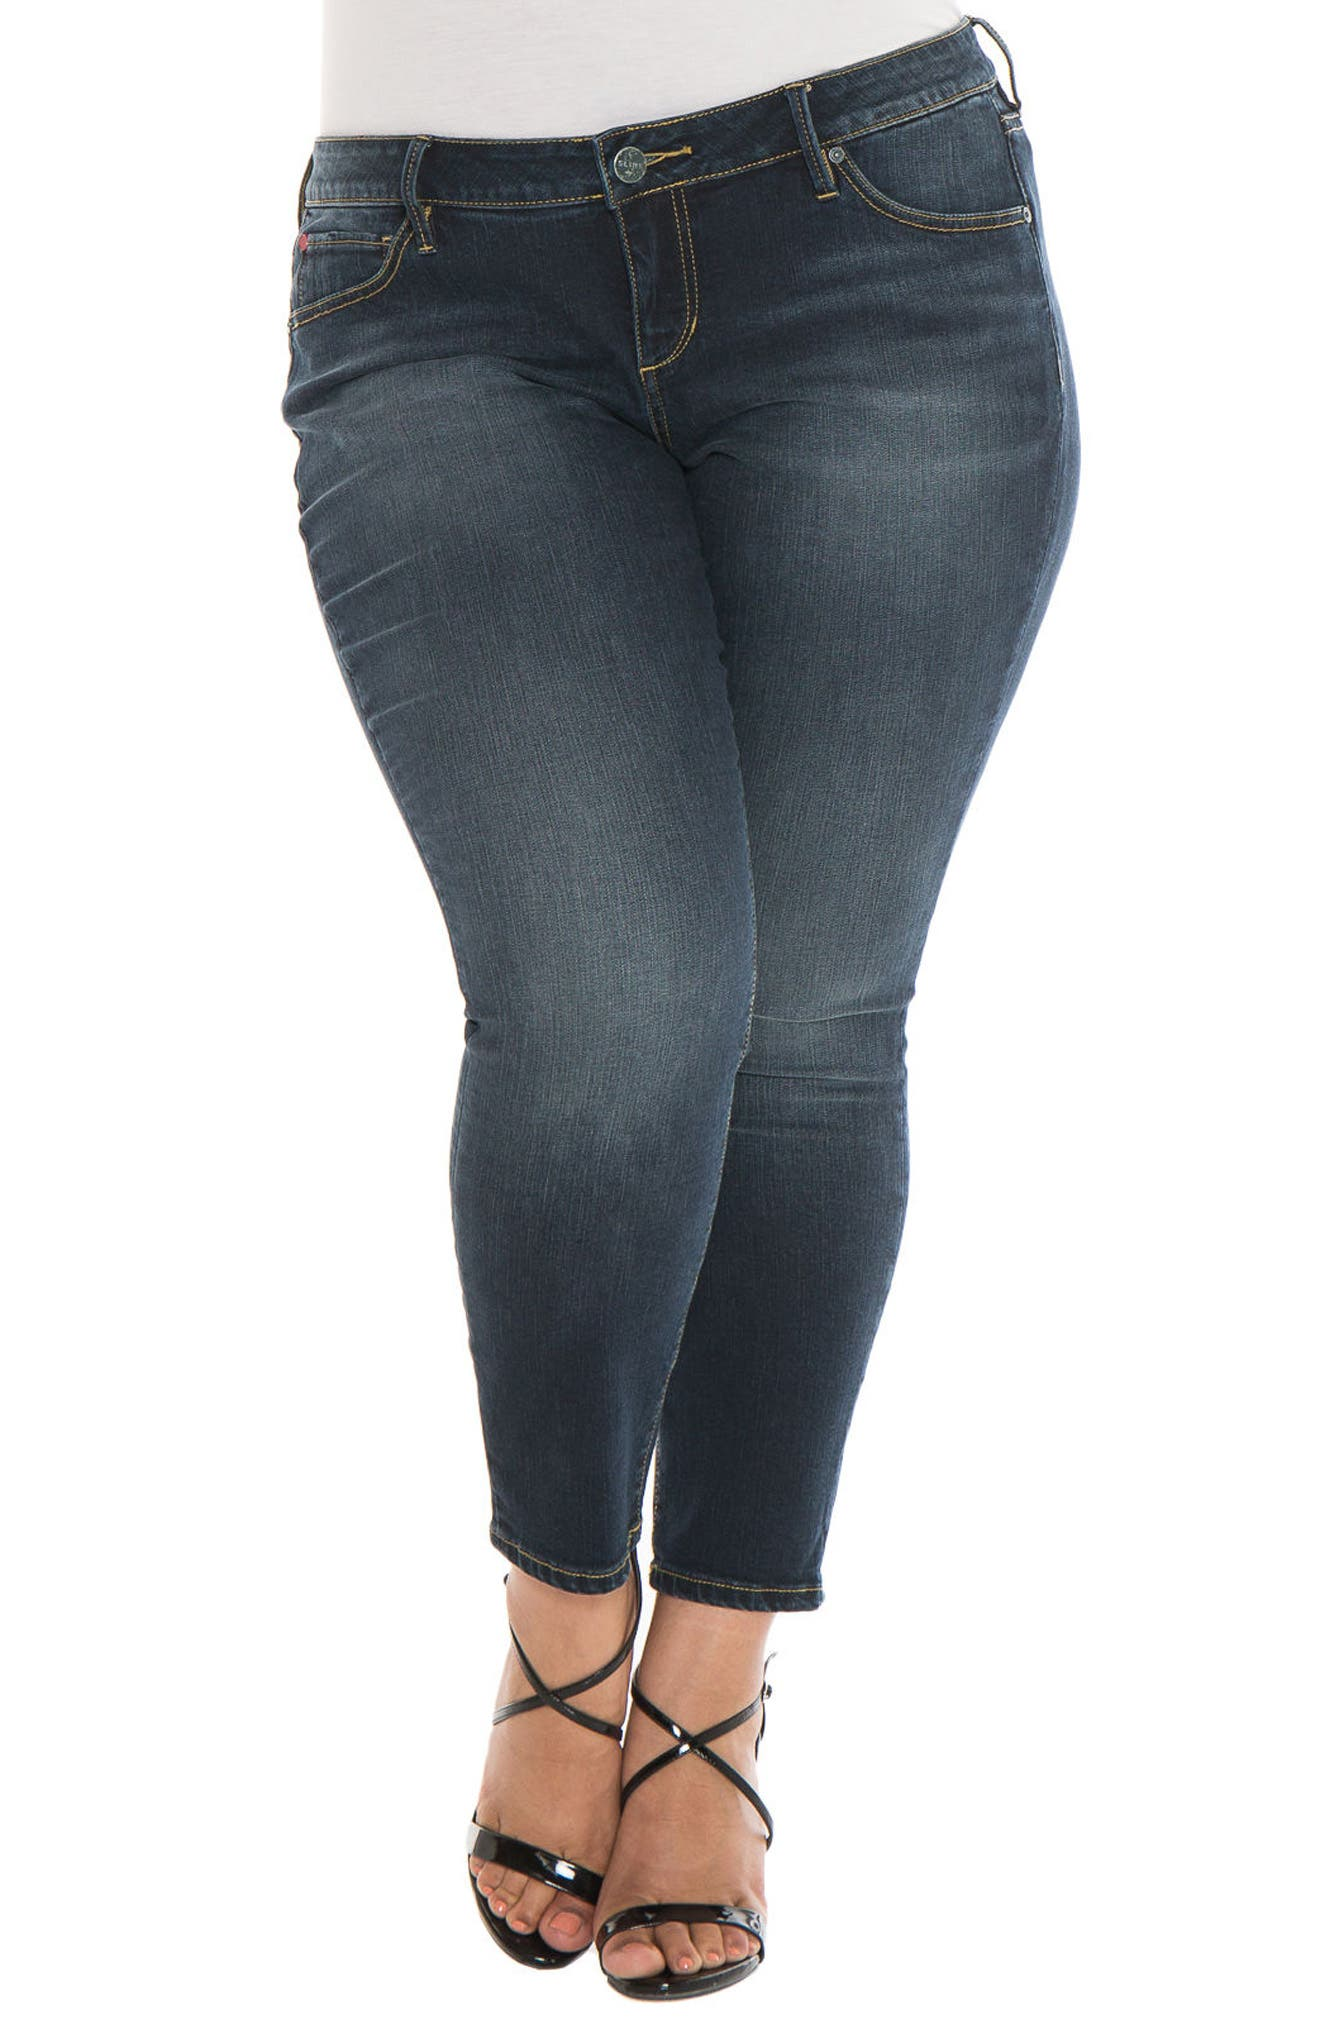 Alternate Image 1 Selected - SLINK Jeans Skinny Ankle Jeans (Sal) (Plus Size)